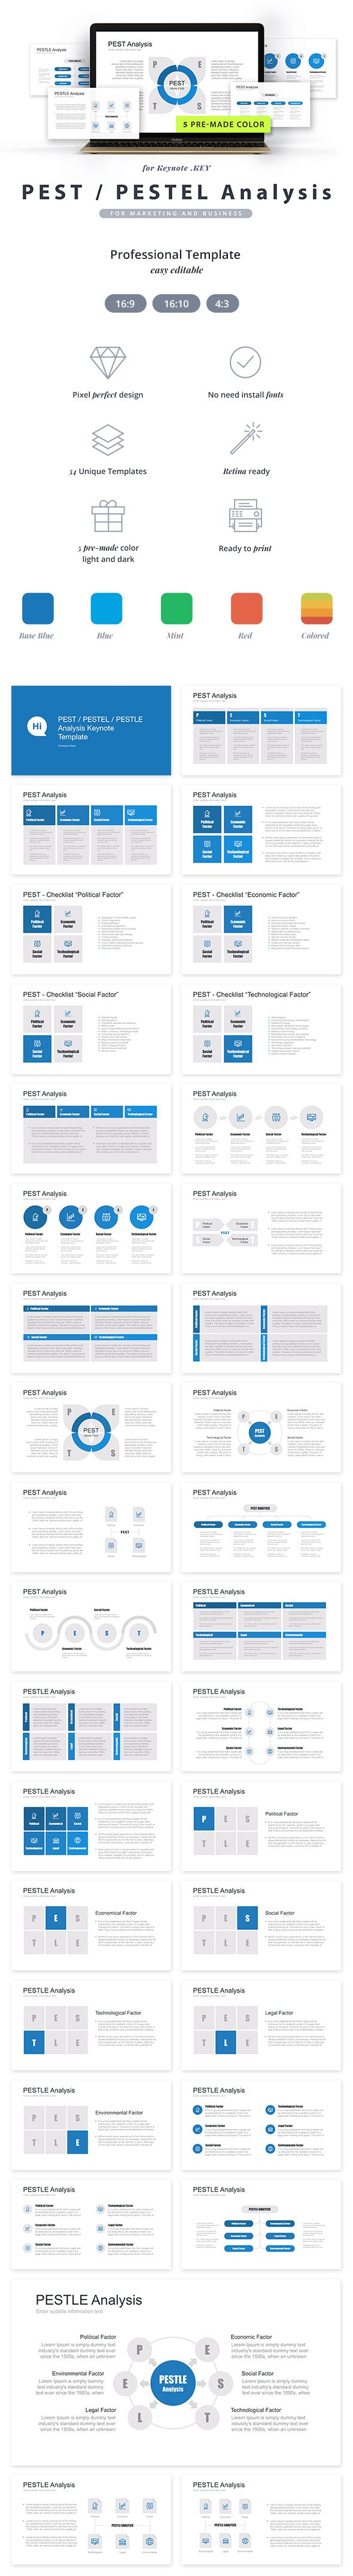 the best pestle analysis ideas swot analysis  pest pestel pestle analysis keynote template